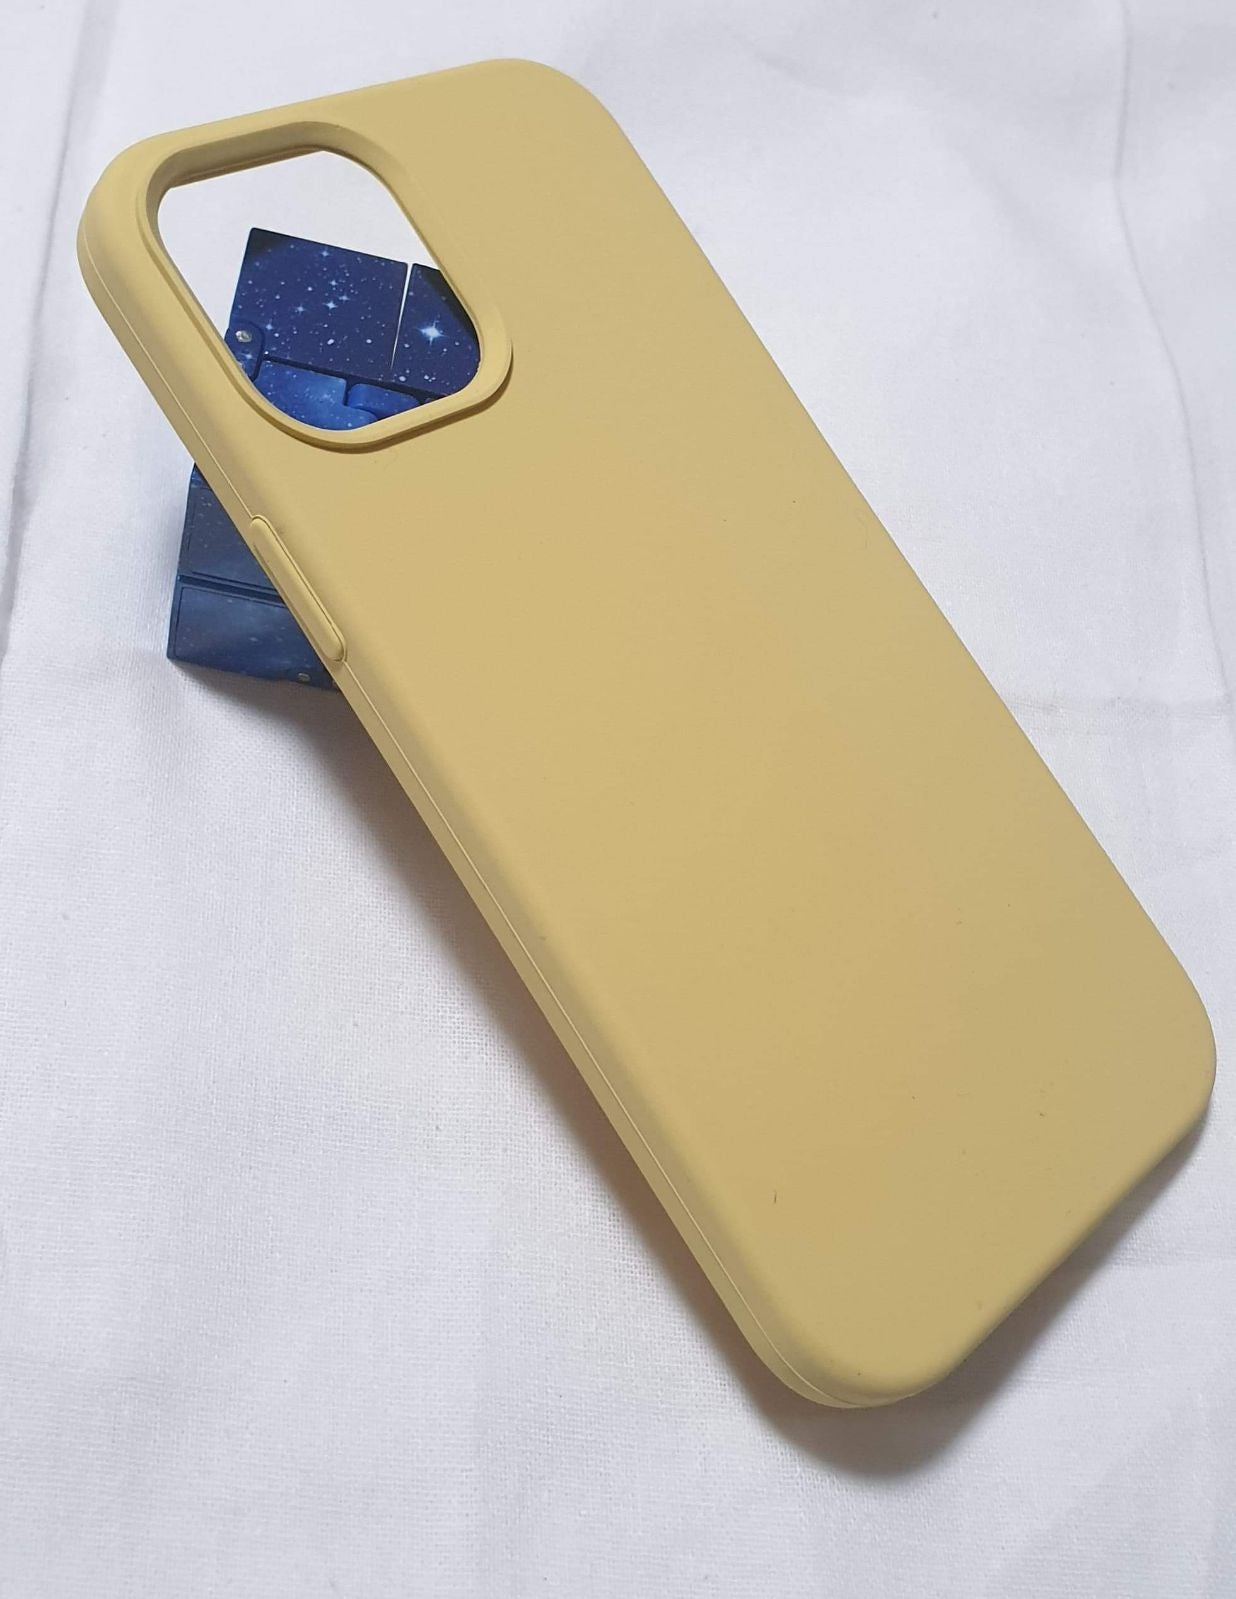 New IPhone 12 PRO Max Case Yellow